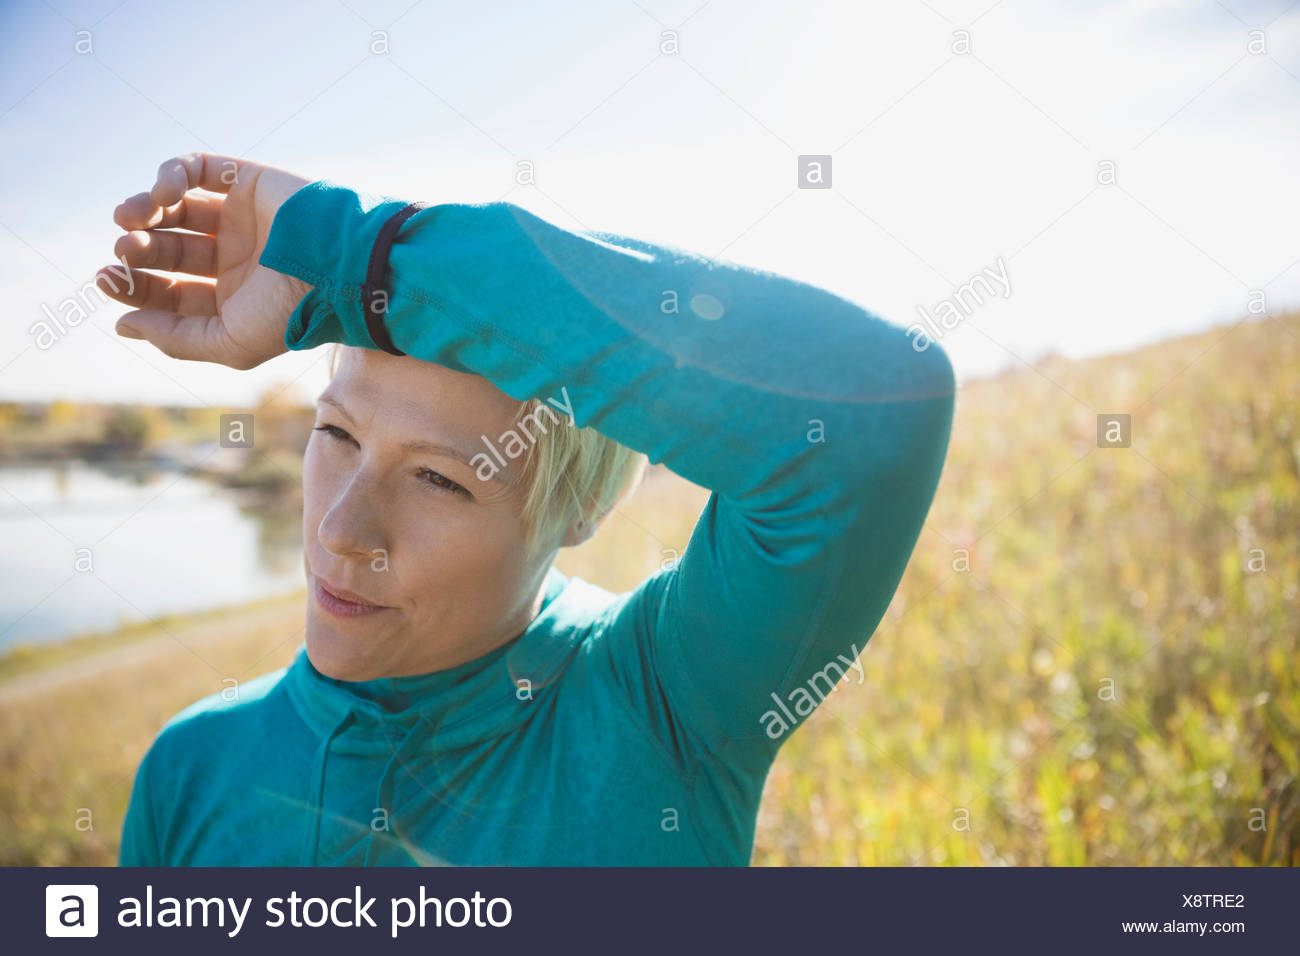 Jogger with hand on head in sunny field - Stock Image